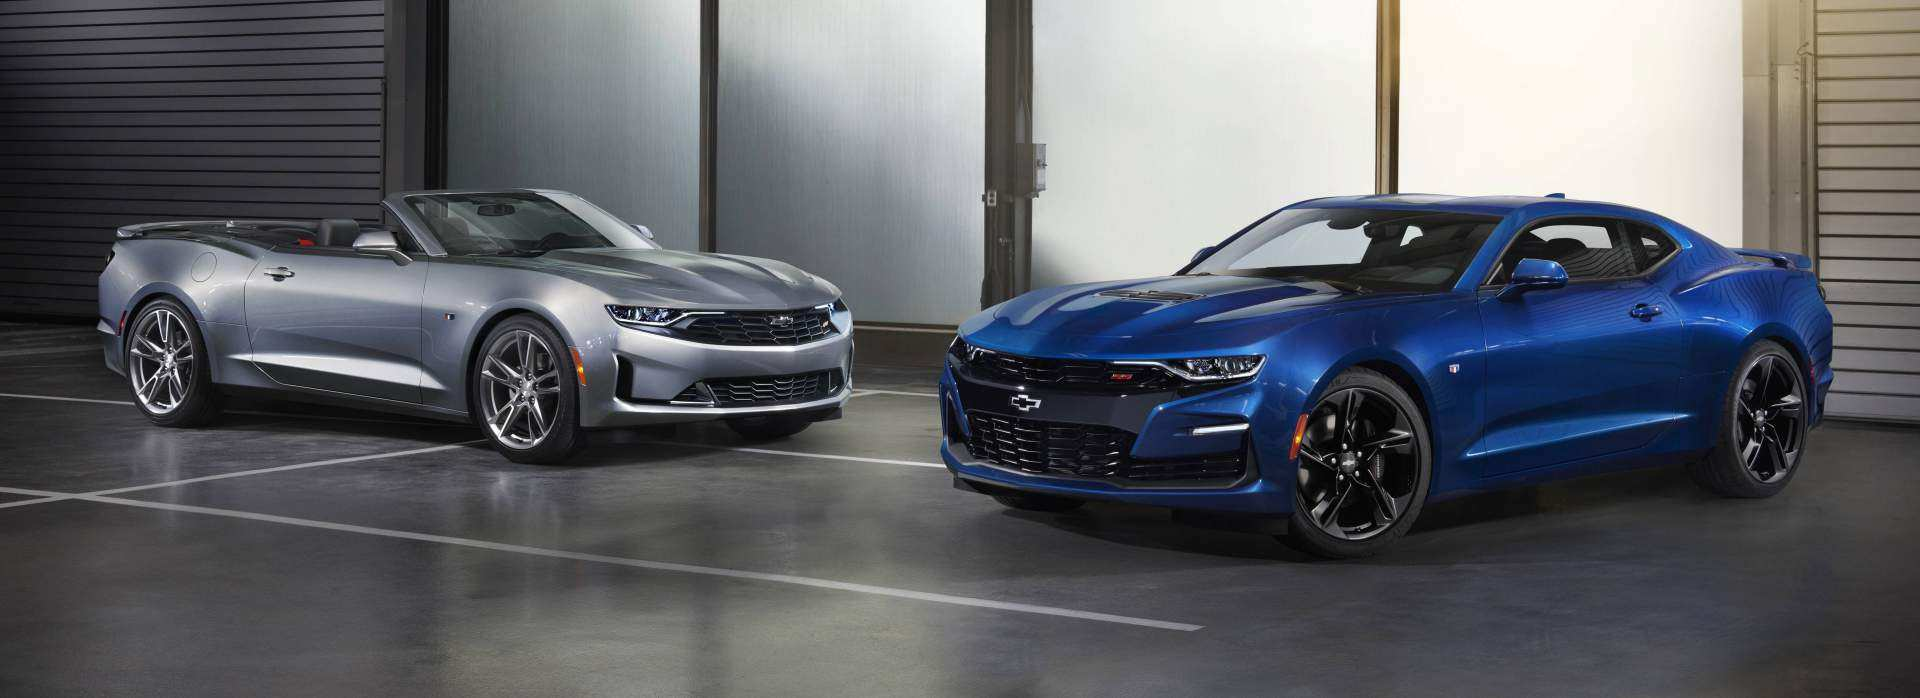 95 New Chevrolet Camaro 2020 Pictures Specs And Review